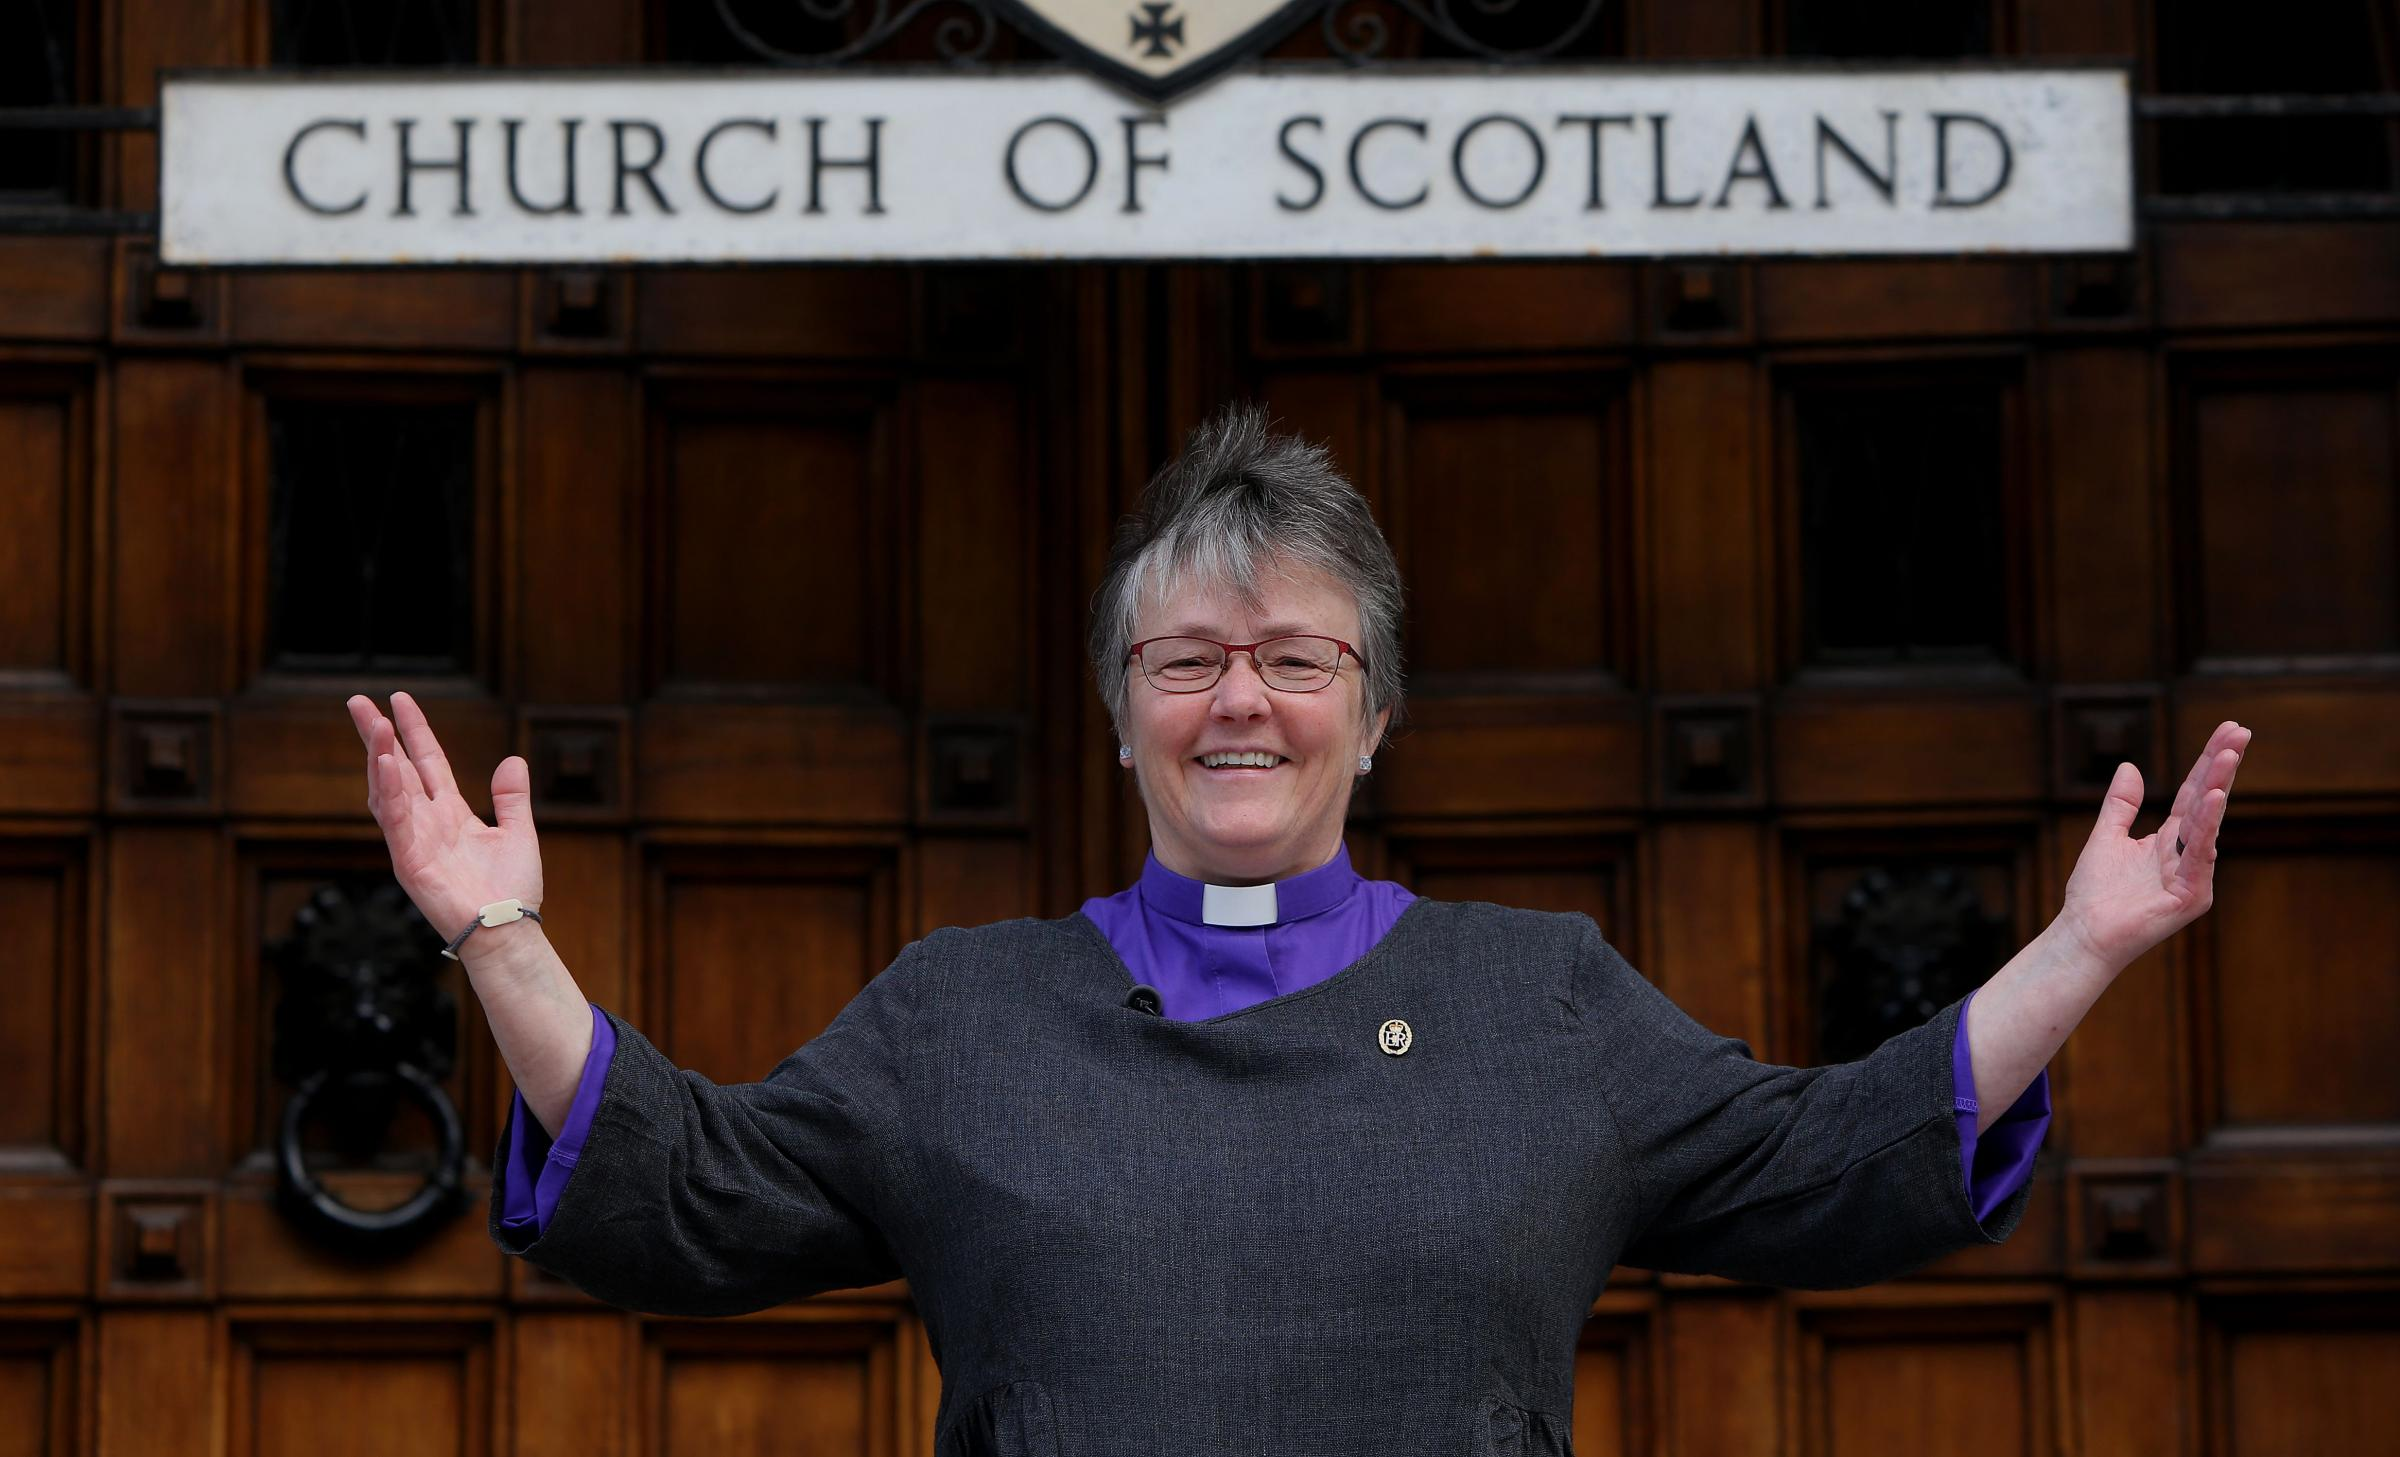 Faith no more: Questions over a liberal approach as Church of Scotland affiliation plummets